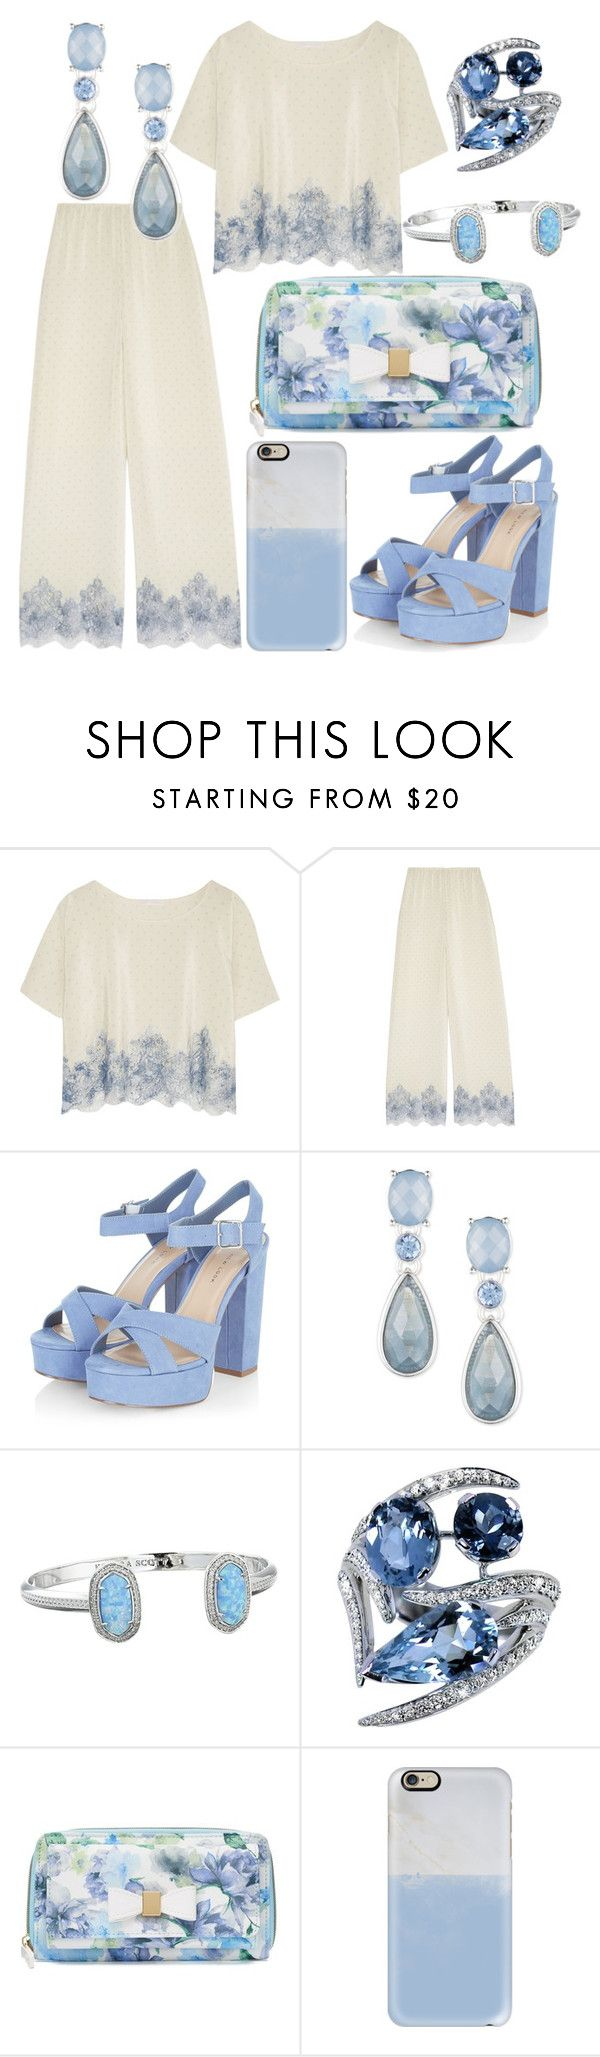 """Untitled #170"" by conformtouskids on Polyvore featuring Rosamosario, Anne Klein, Kendra Scott, Shaun Leane, Apt. 9 and Casetify"